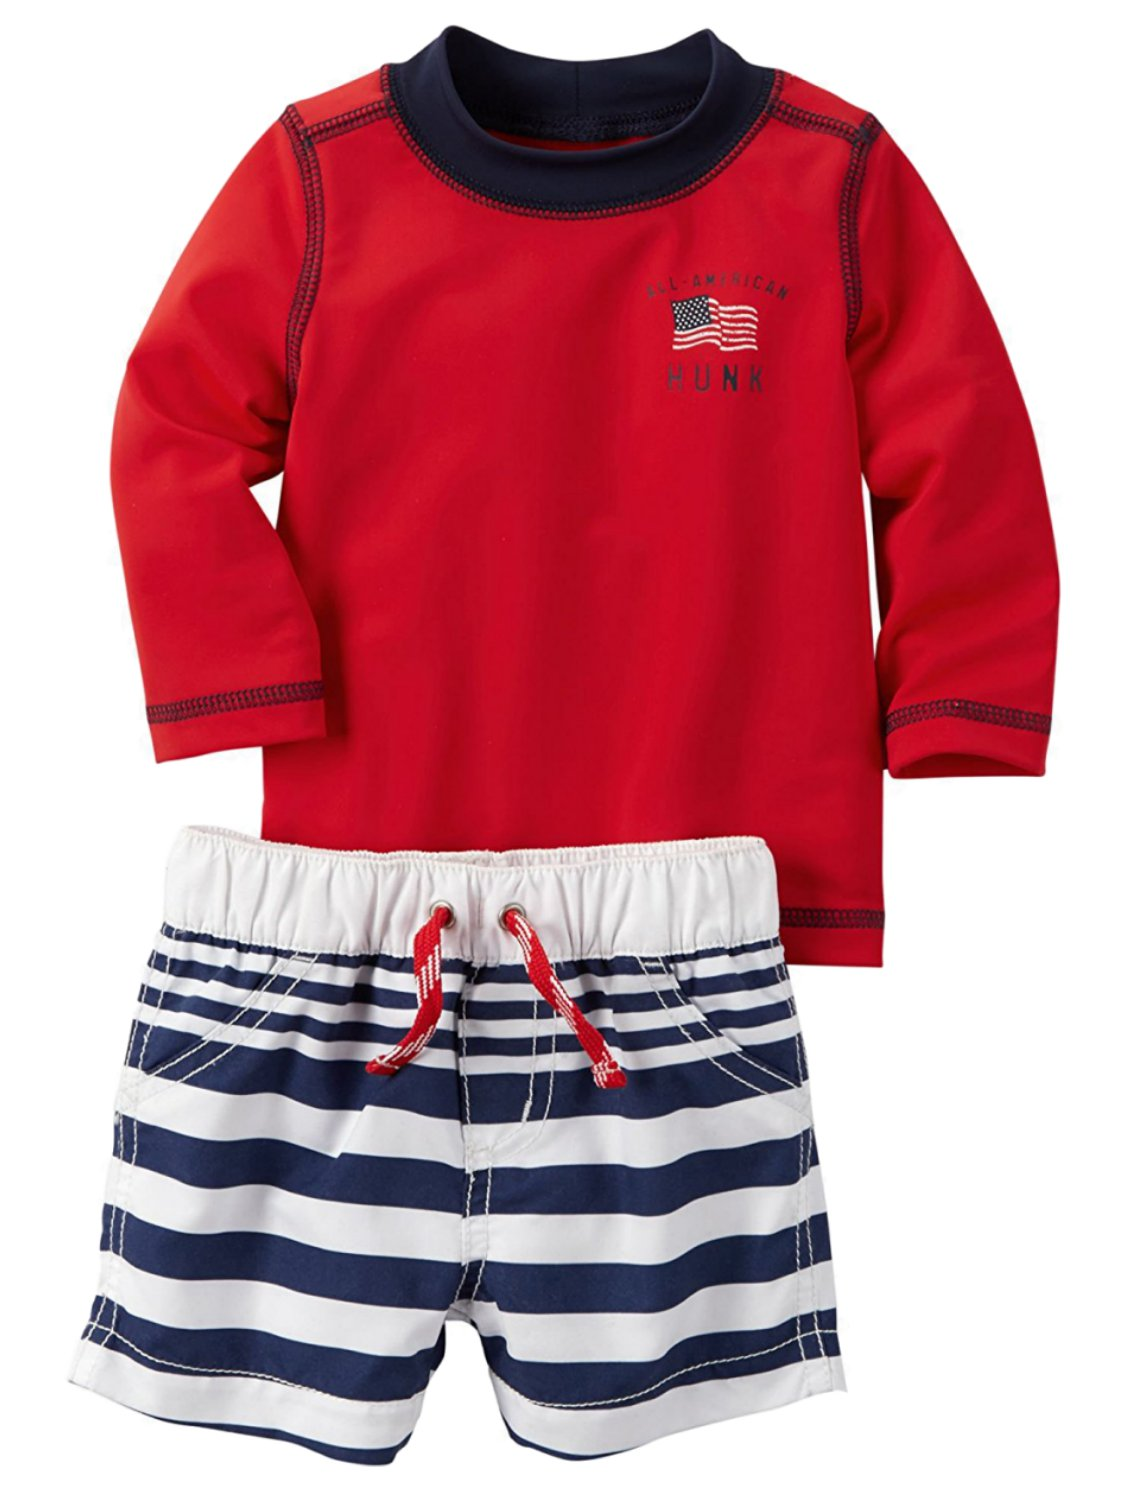 Carters Infant Boy All American Hunk Patriotic Rash Guard Swim Trunks Set 3m